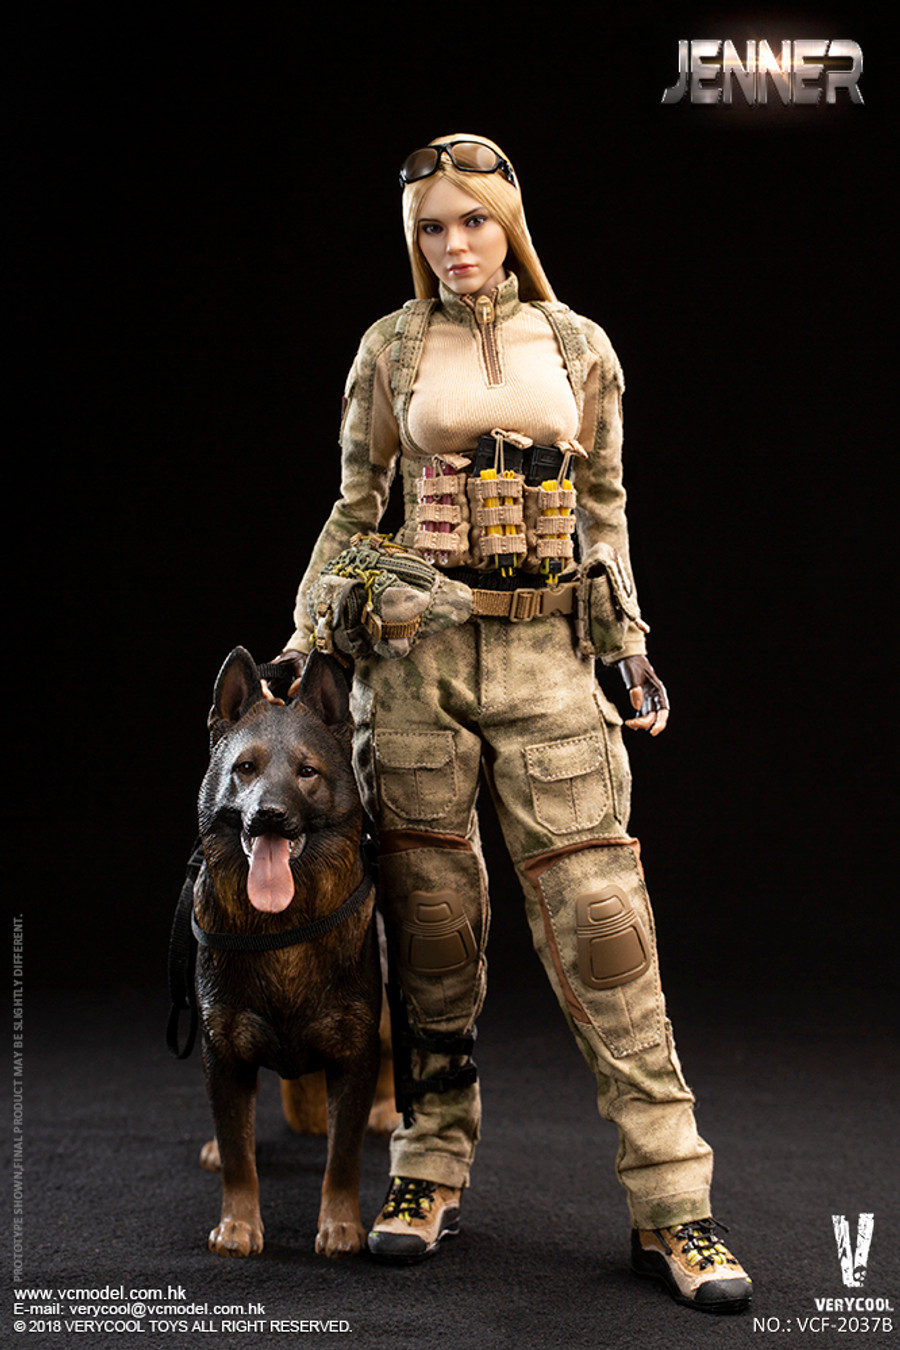 Very Cool - Women Soldier - Jenner (B Style)